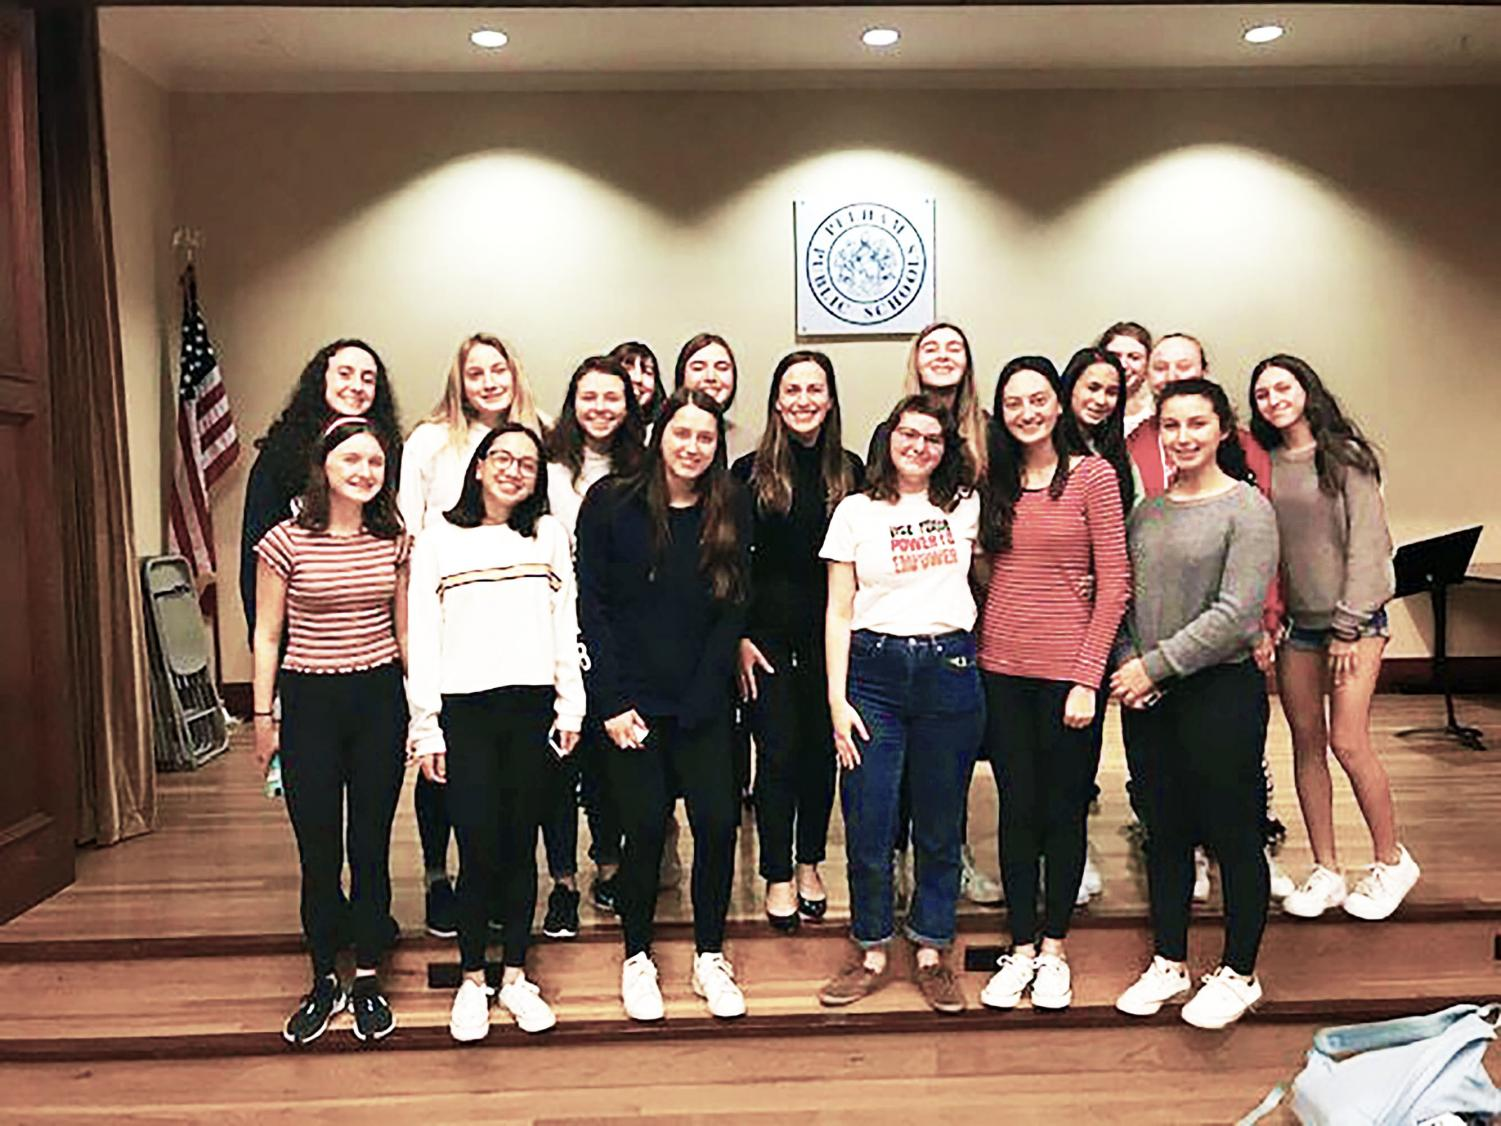 Pelham's Women's Empowerment club invited senator-elect Alessandra Biaggi to speak to the group just two weeks before the election.